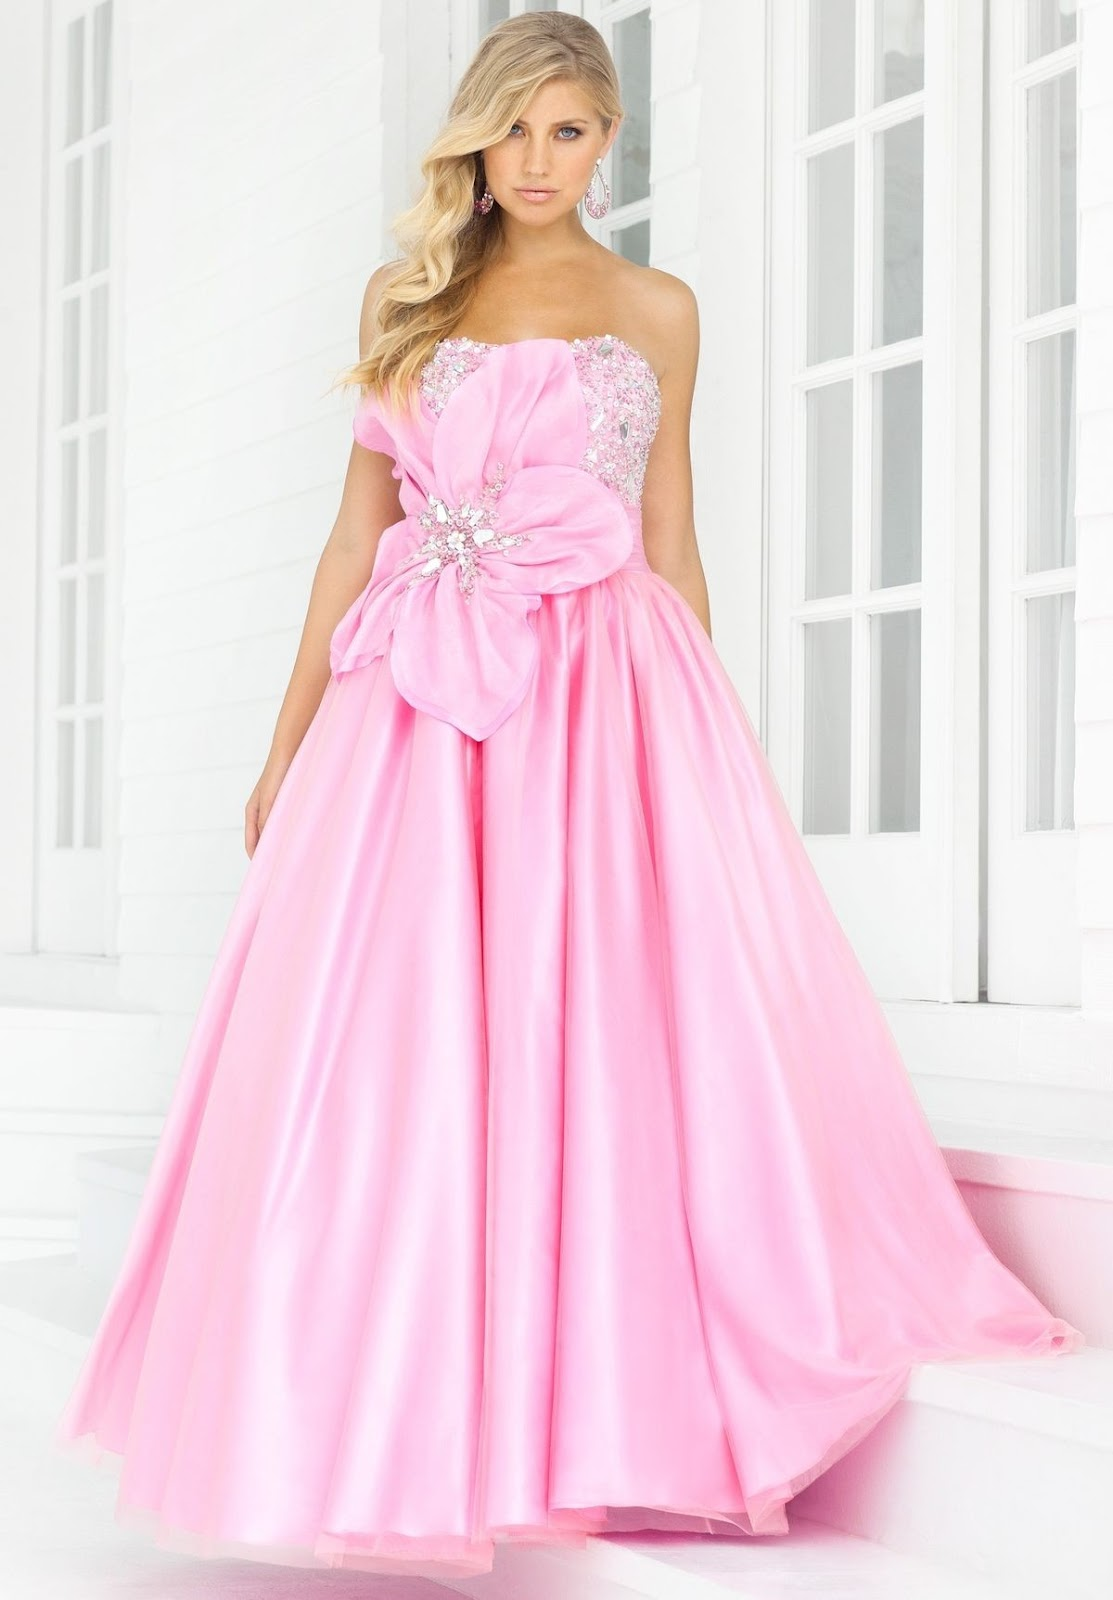 WhiteAzalea Ball Gowns: Delicate Ball Gowns Make You a ...